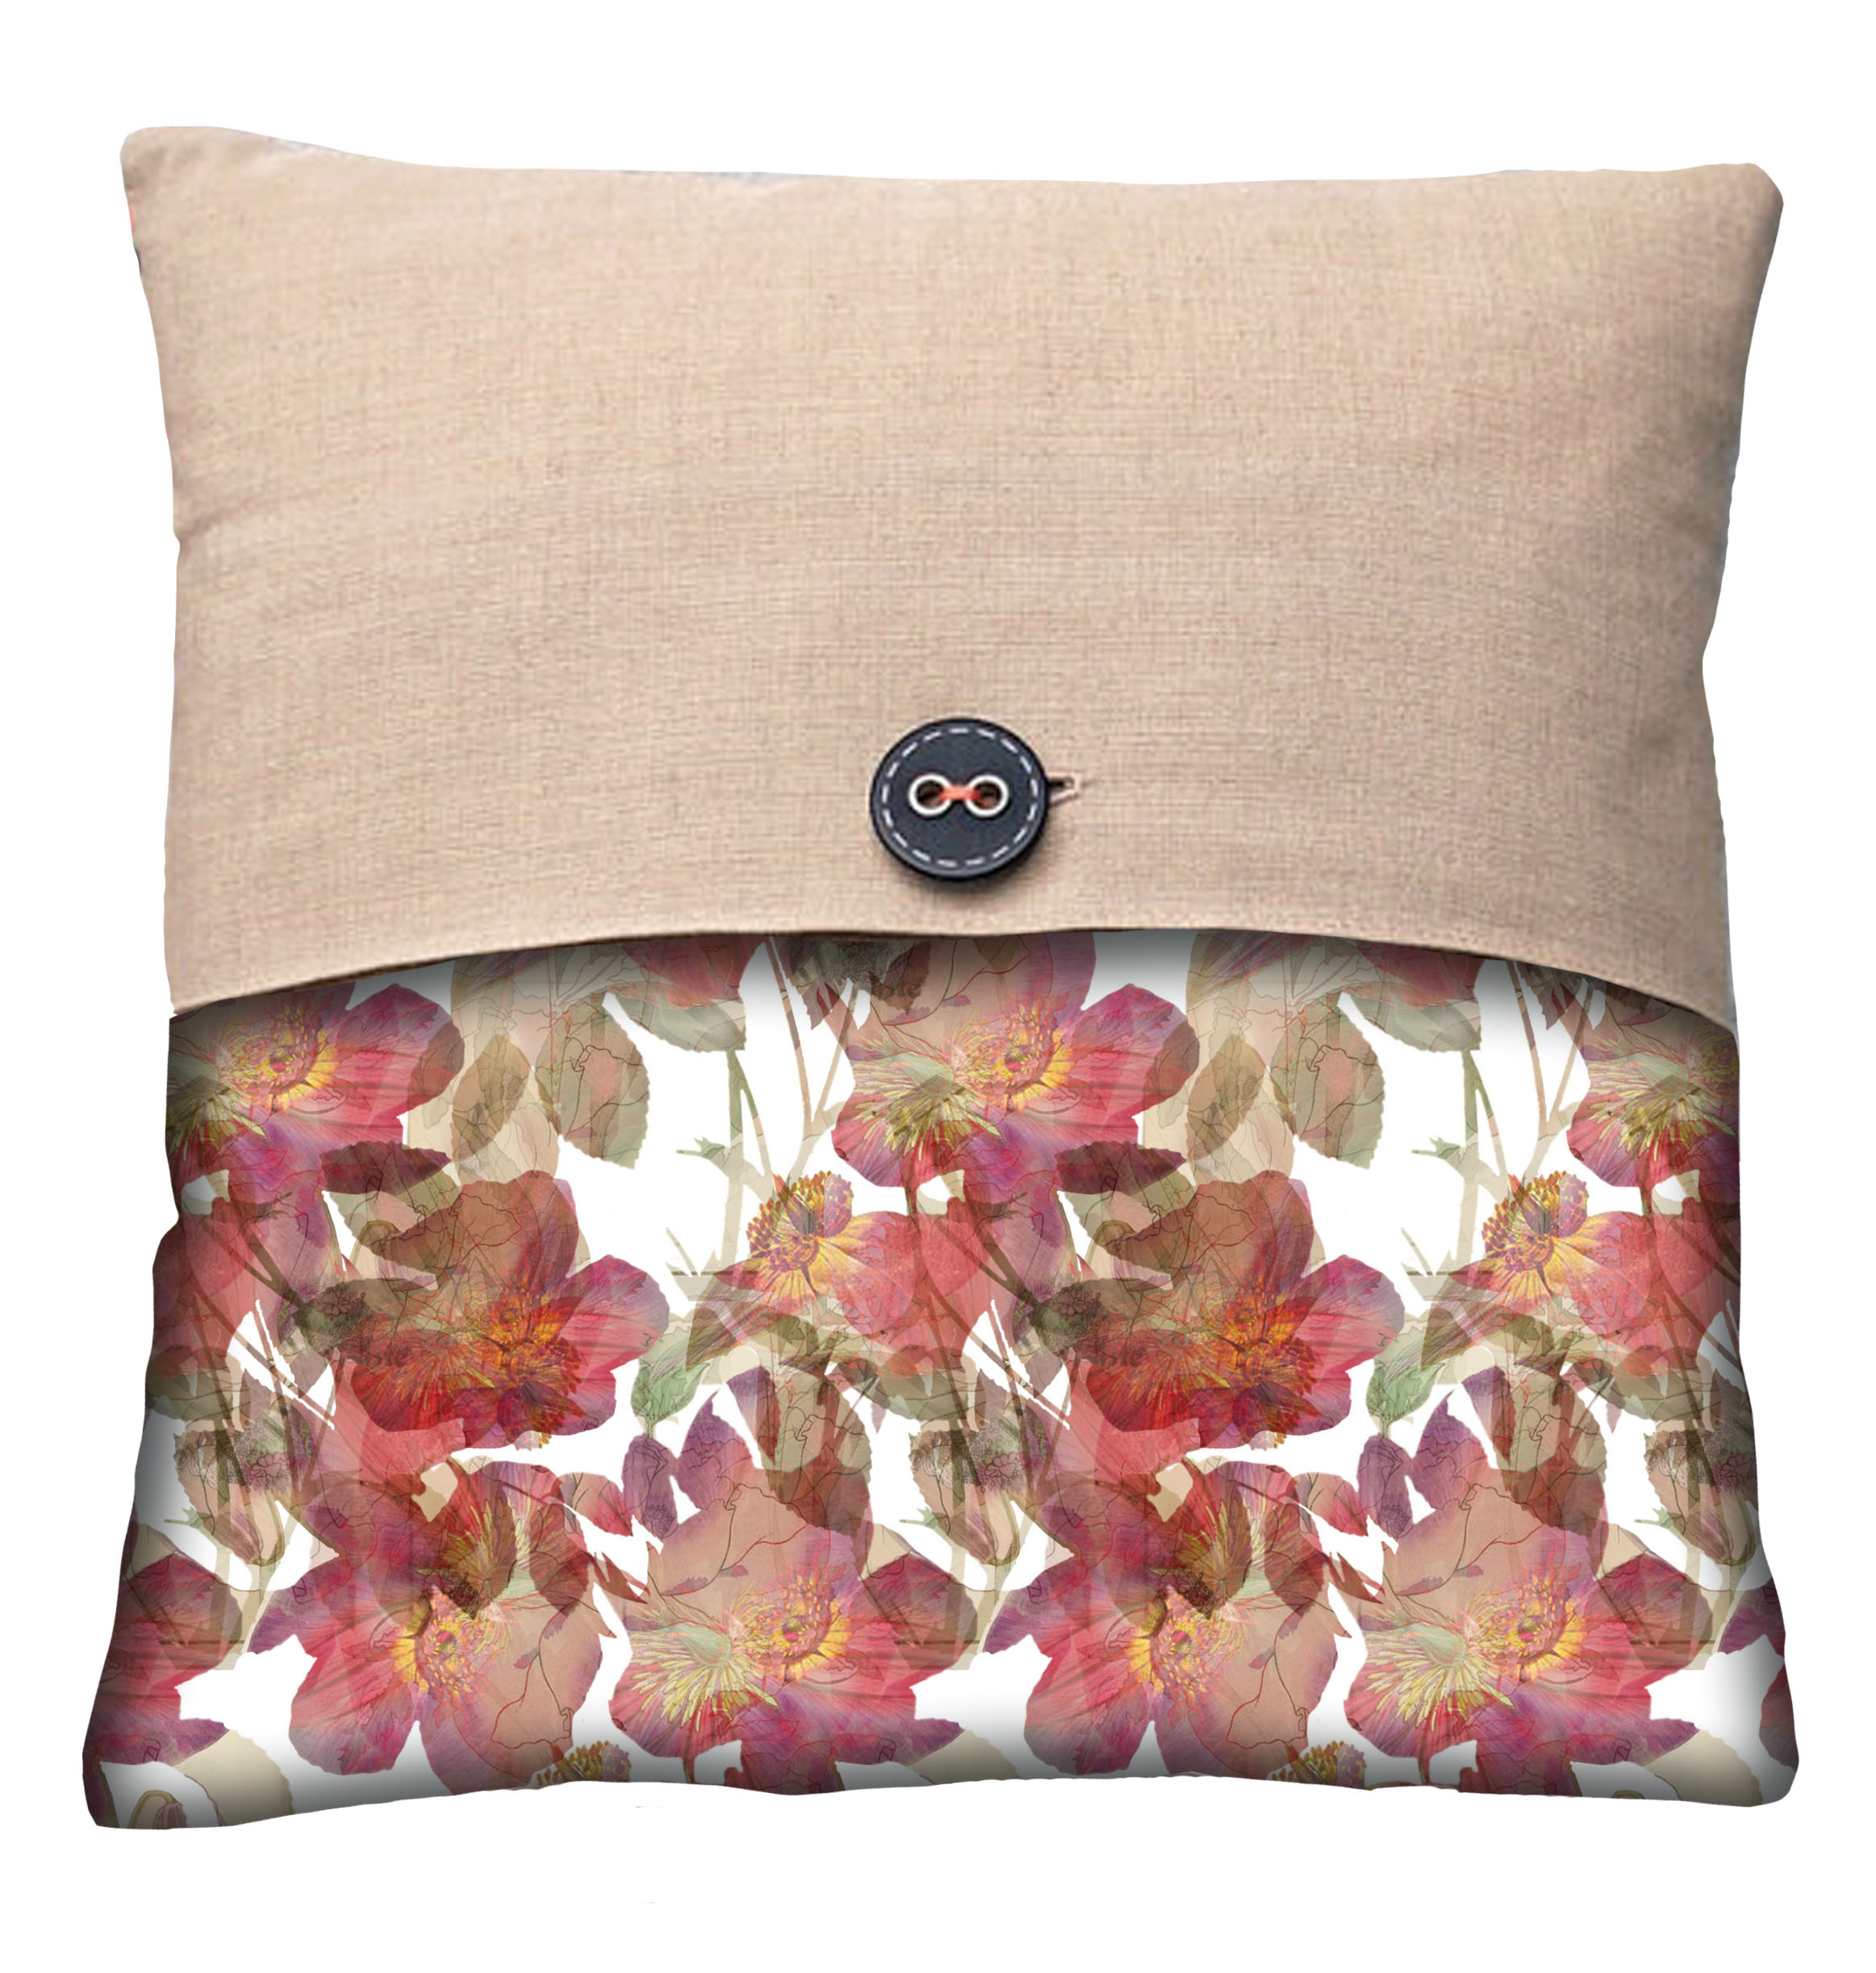 Floral Overlay pillow